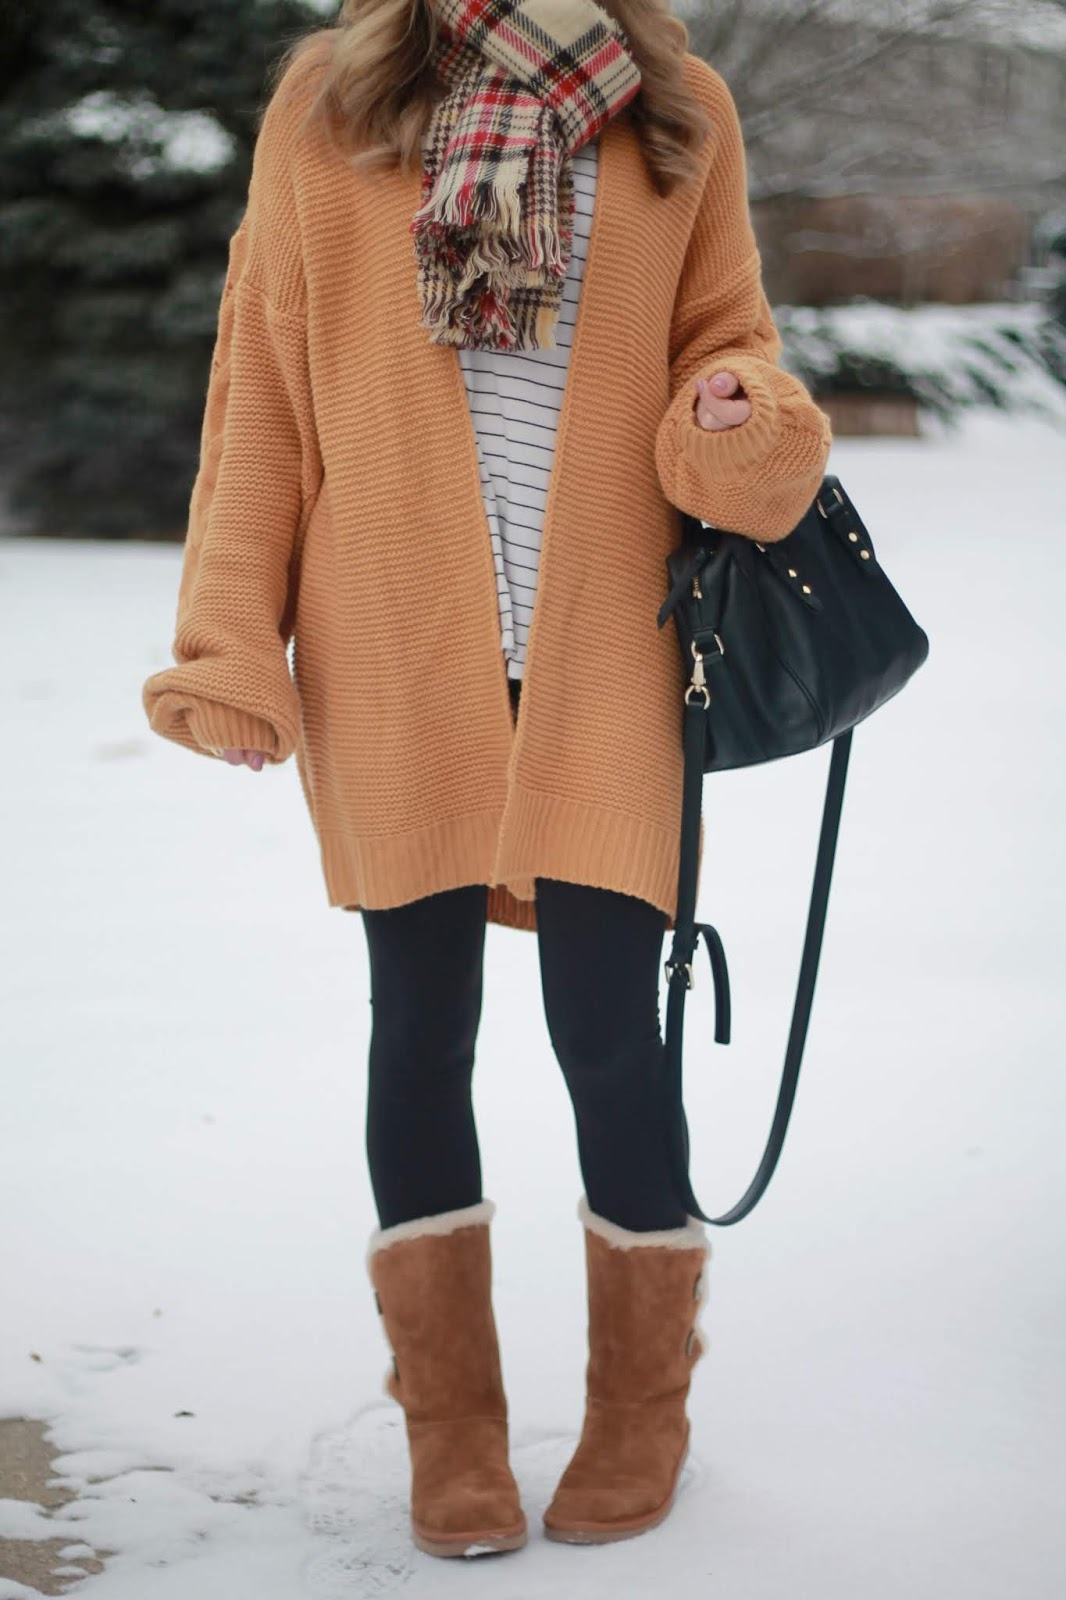 oversized mustard cardigan, striped long sleeve tee, black leggings, kinsley koolaburra, black kate spade crossbody, plaid reversible scarf, white fur pom beanie